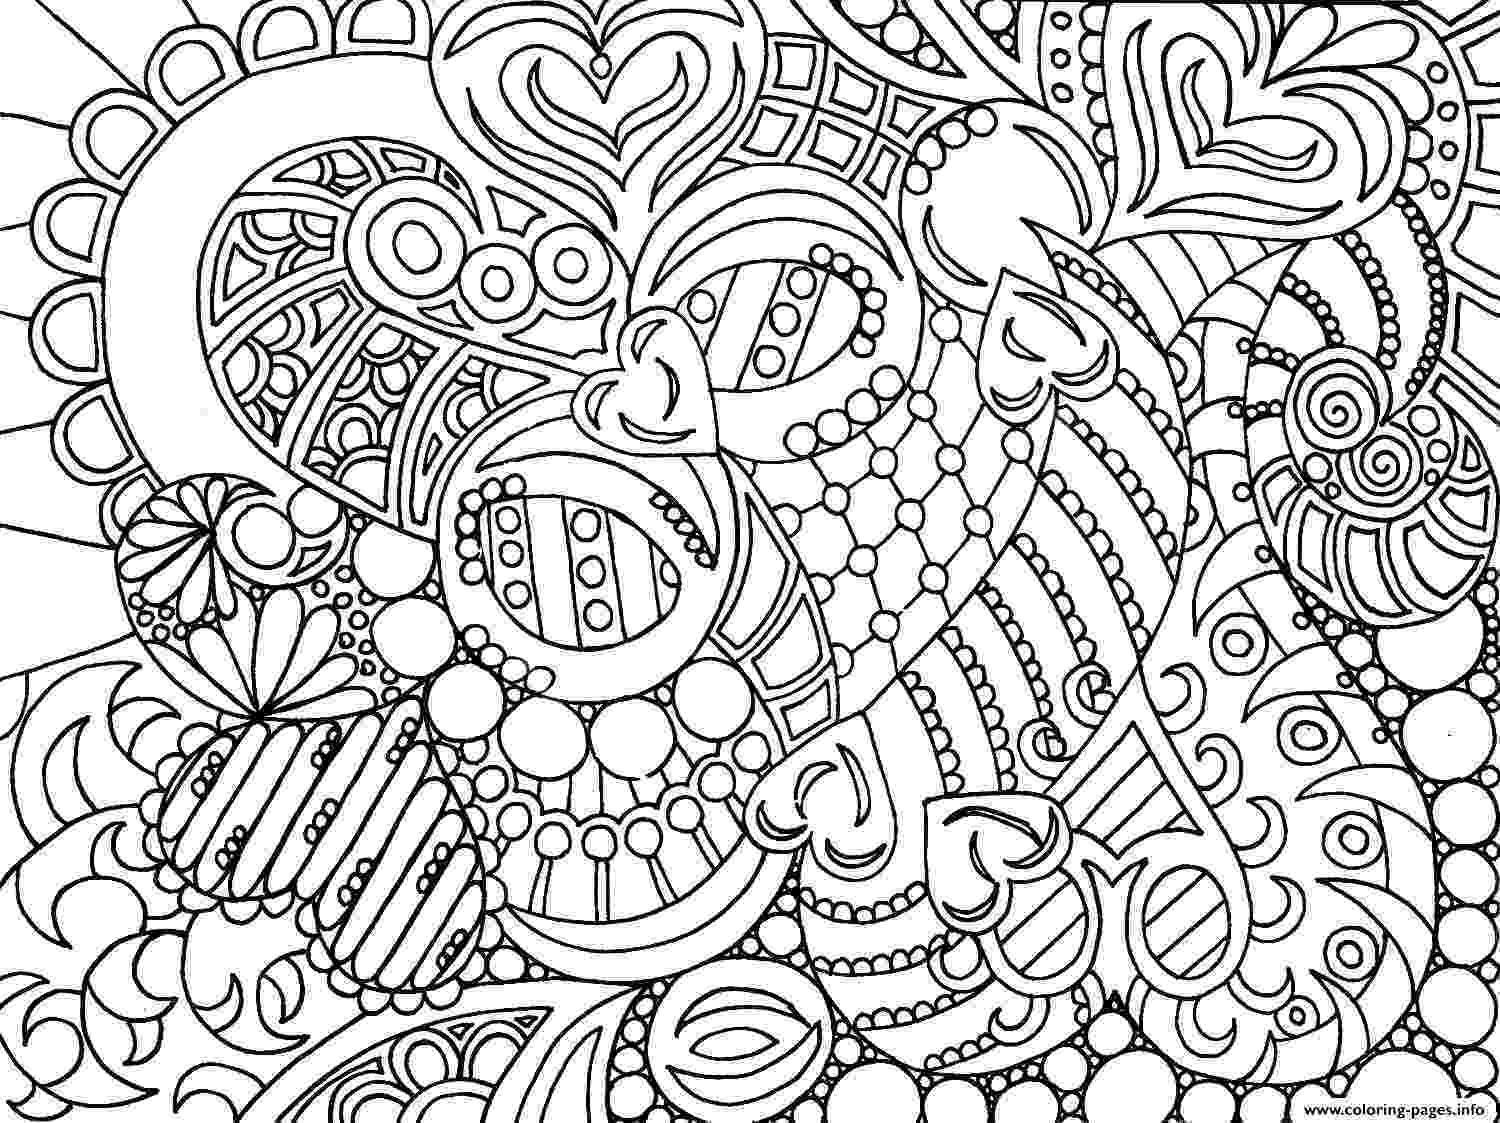 cool coloring pictures grafiti new most graffiti sketches graffiti coloring cool pictures coloring